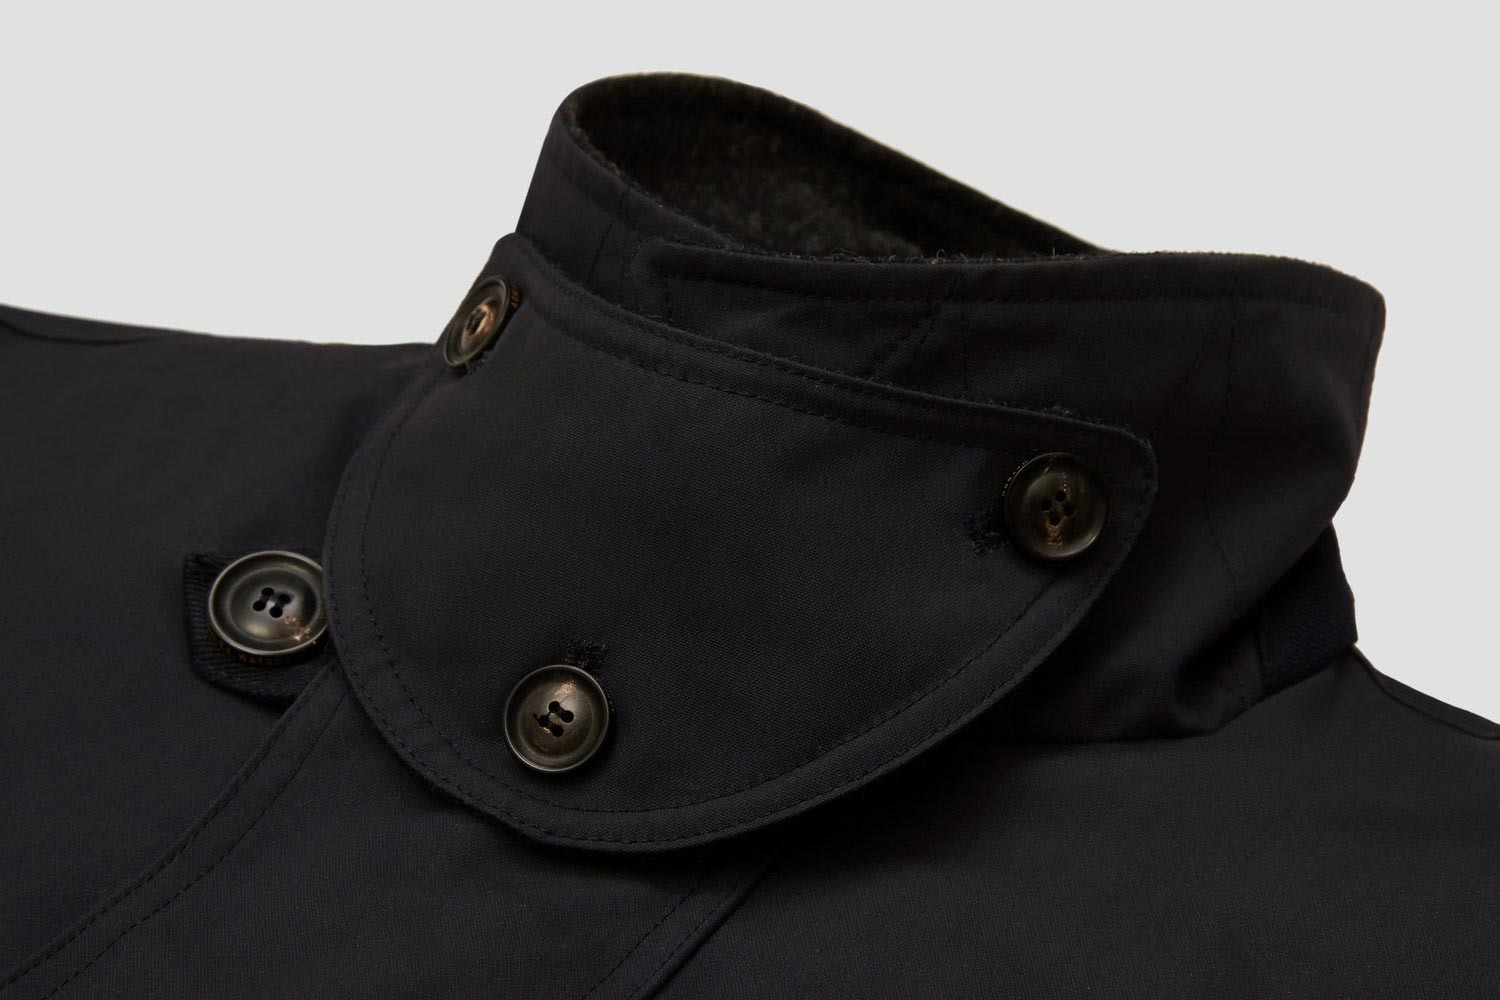 Neck sealed by signature three-button storm baffle.